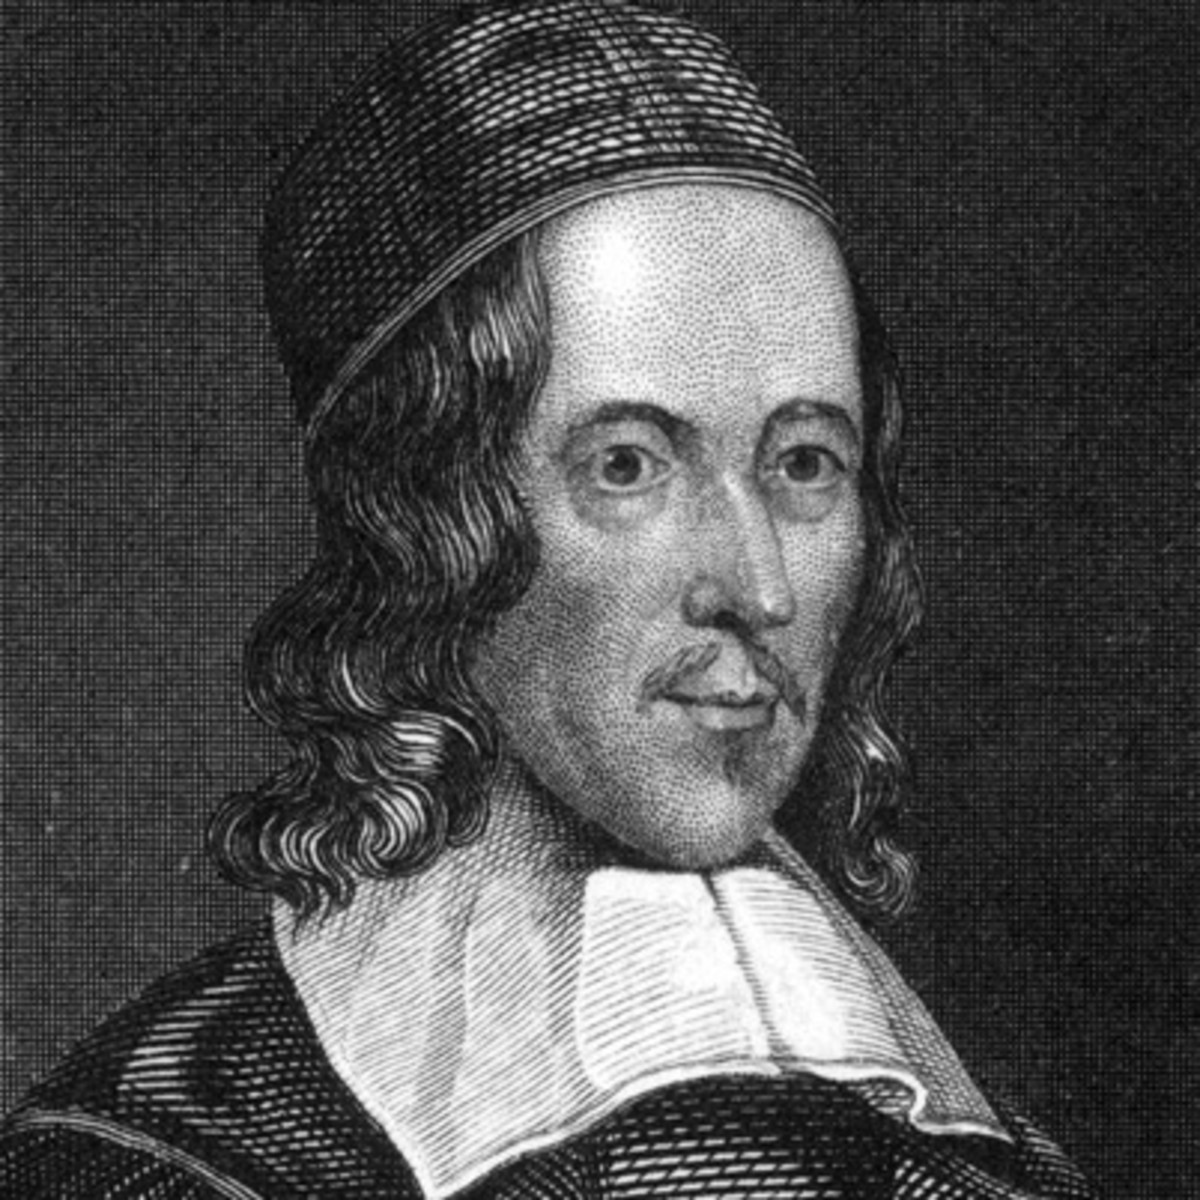 a biography of herbert george George herbert's poetry and prose, hyperlinks, research notes, criticism biography metaphysical and religious poet, george herbert (1593-1633) was the fifth son of richard and magdalen newport herbert, a noble and distinguished family from montgomery , wales.